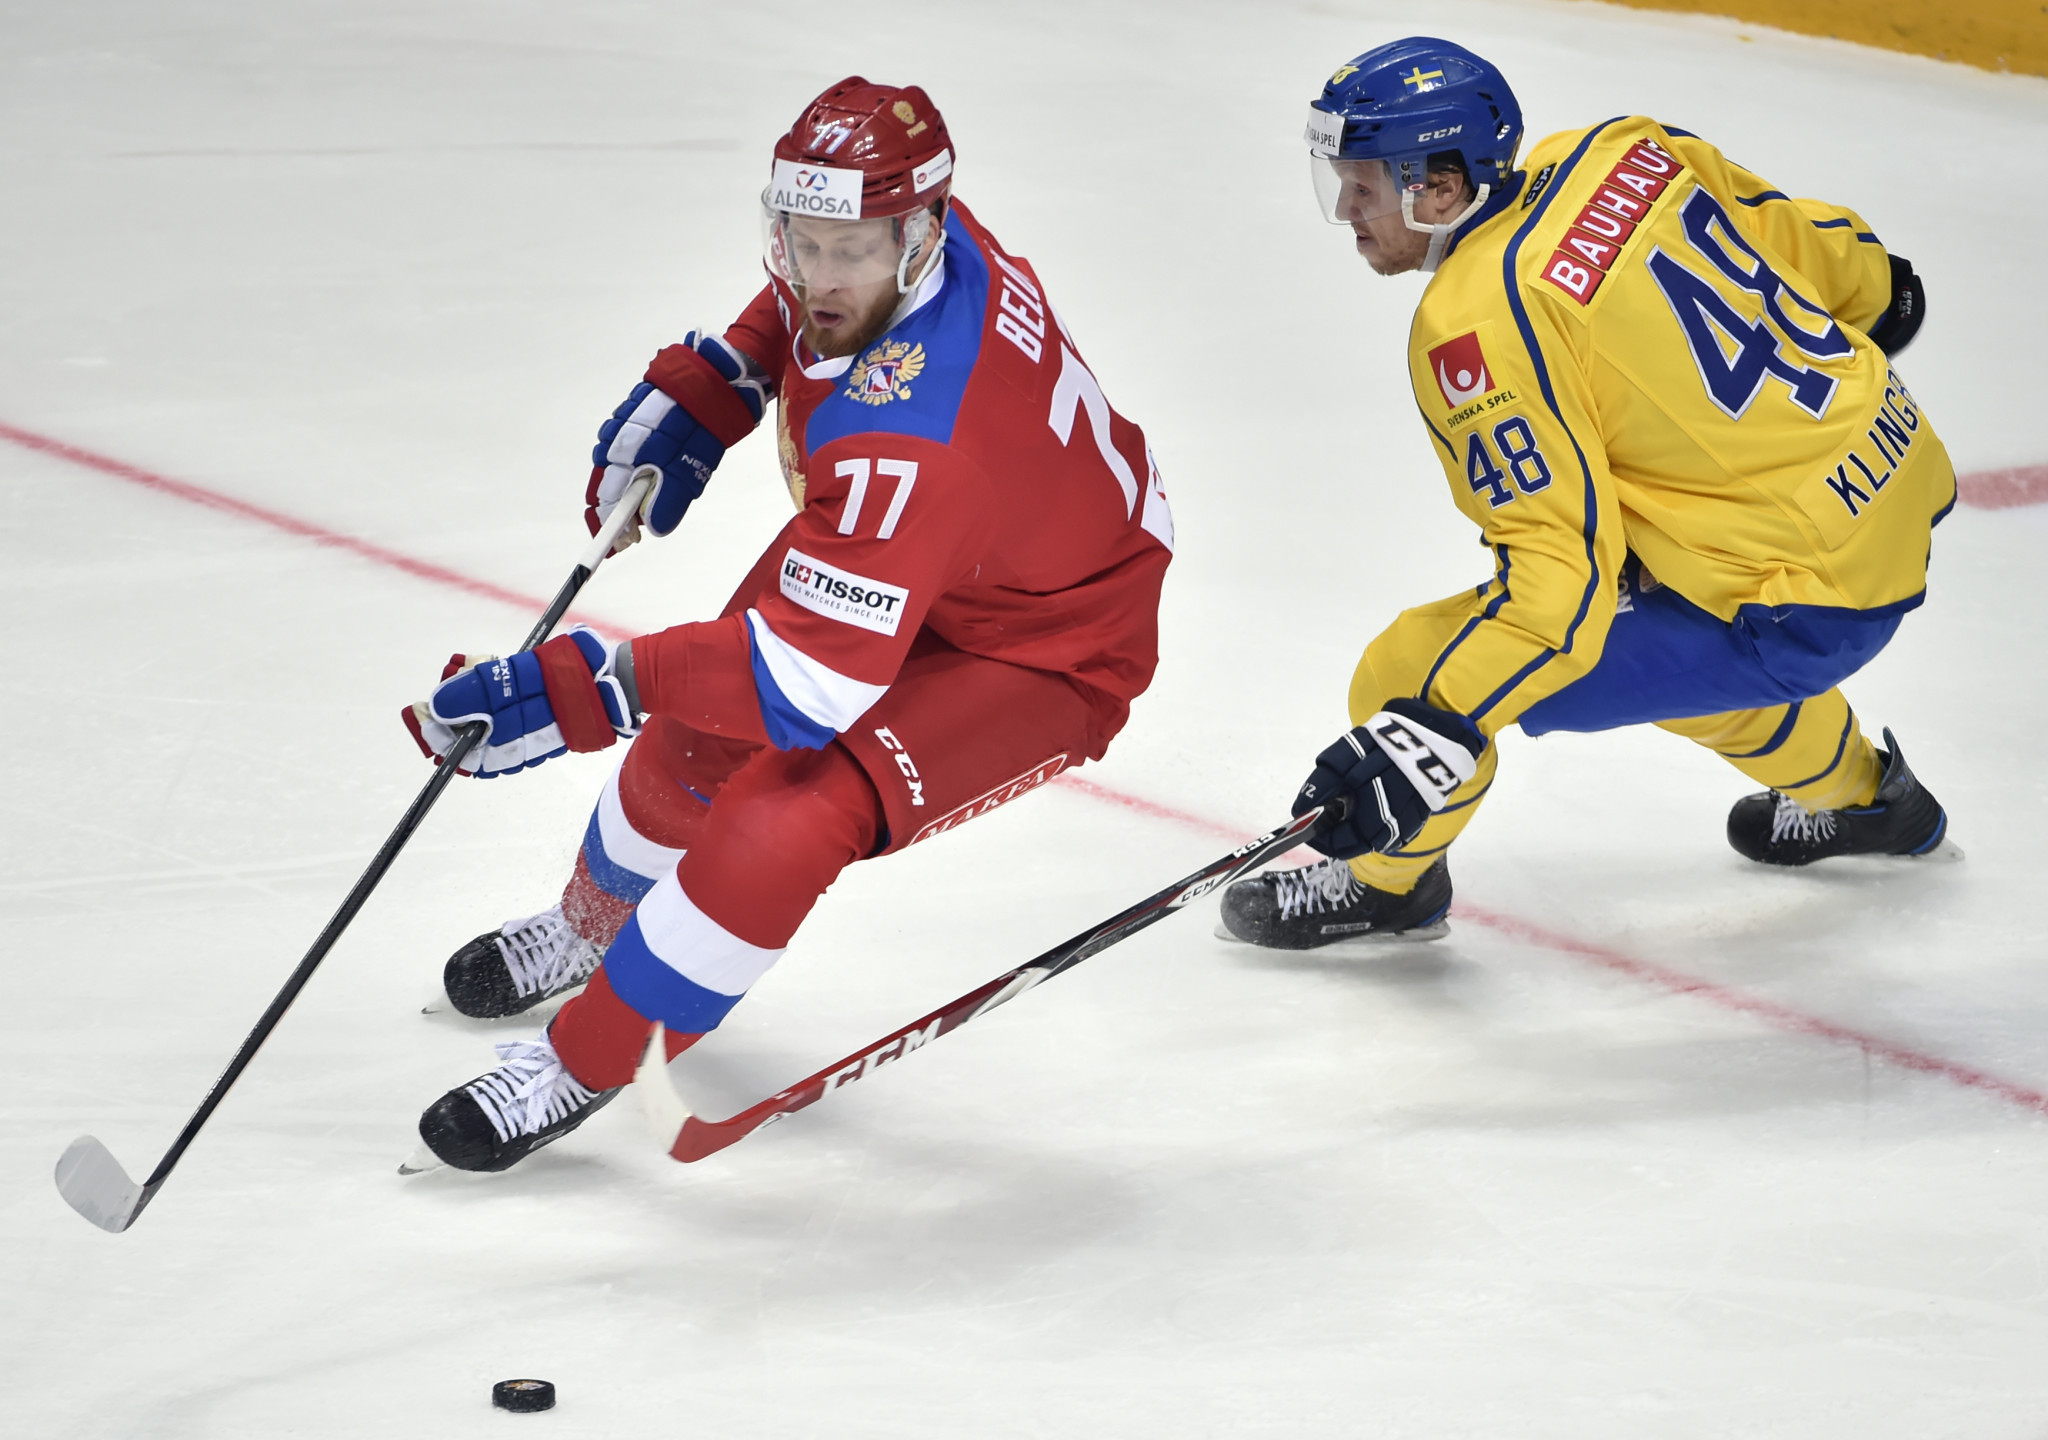 Former NHL player Anton Belov was considered a possibility for the Olympic Athletes from Russia ice hockey team until the IOC banned him, a decision he is now appealing against ©Getty Images